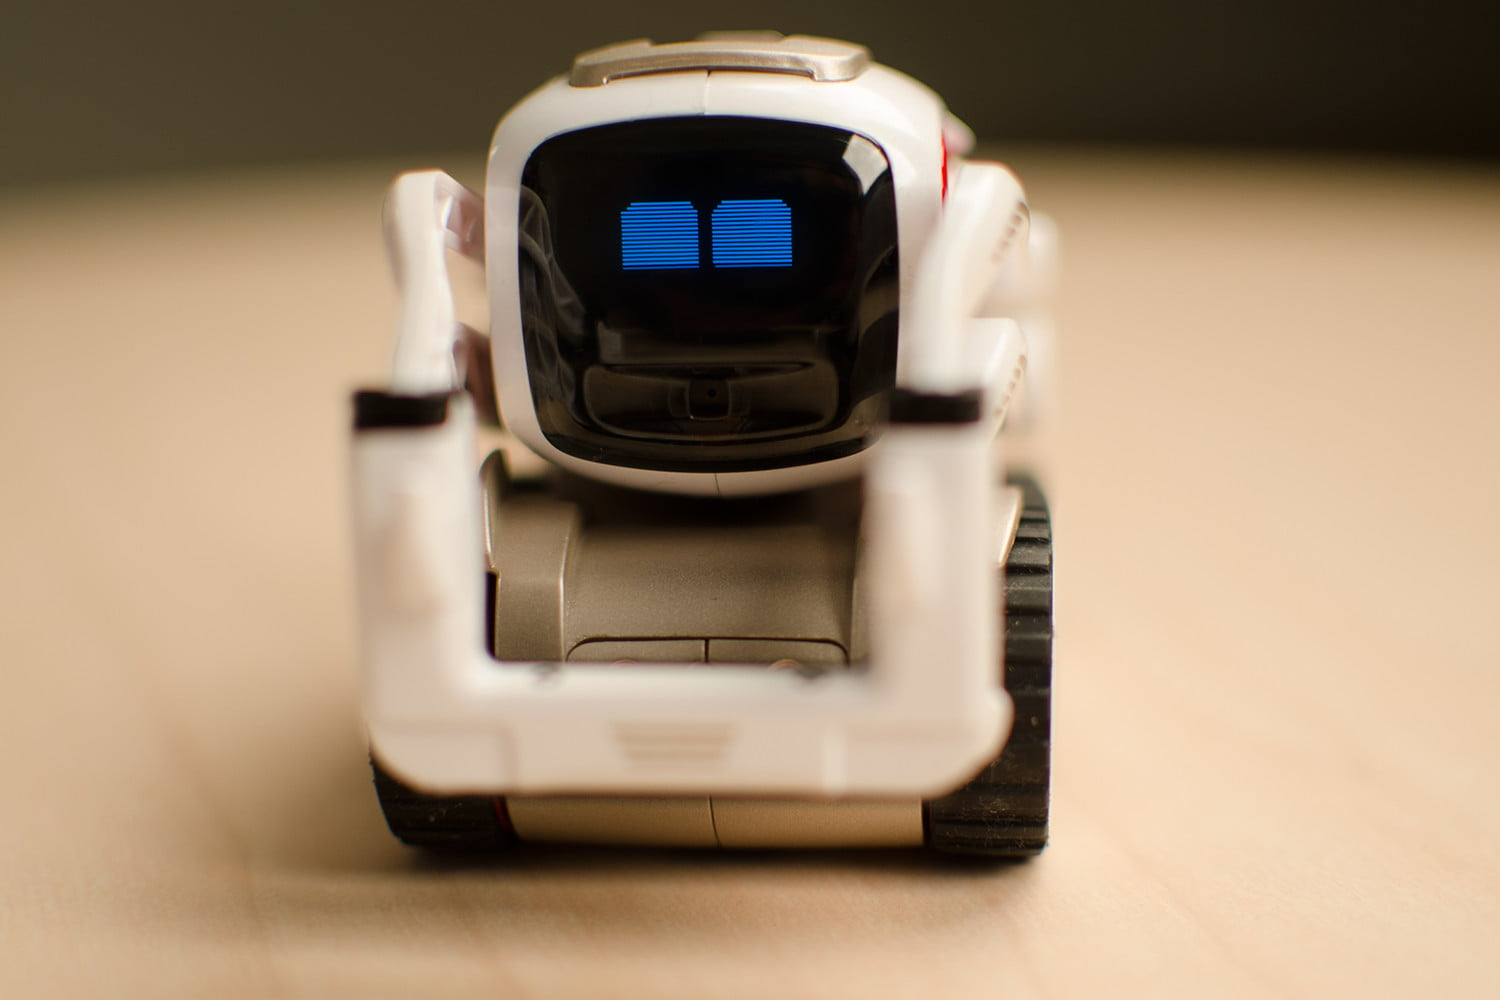 Hands On With Anki's Cozmo Robot | Digital Trends